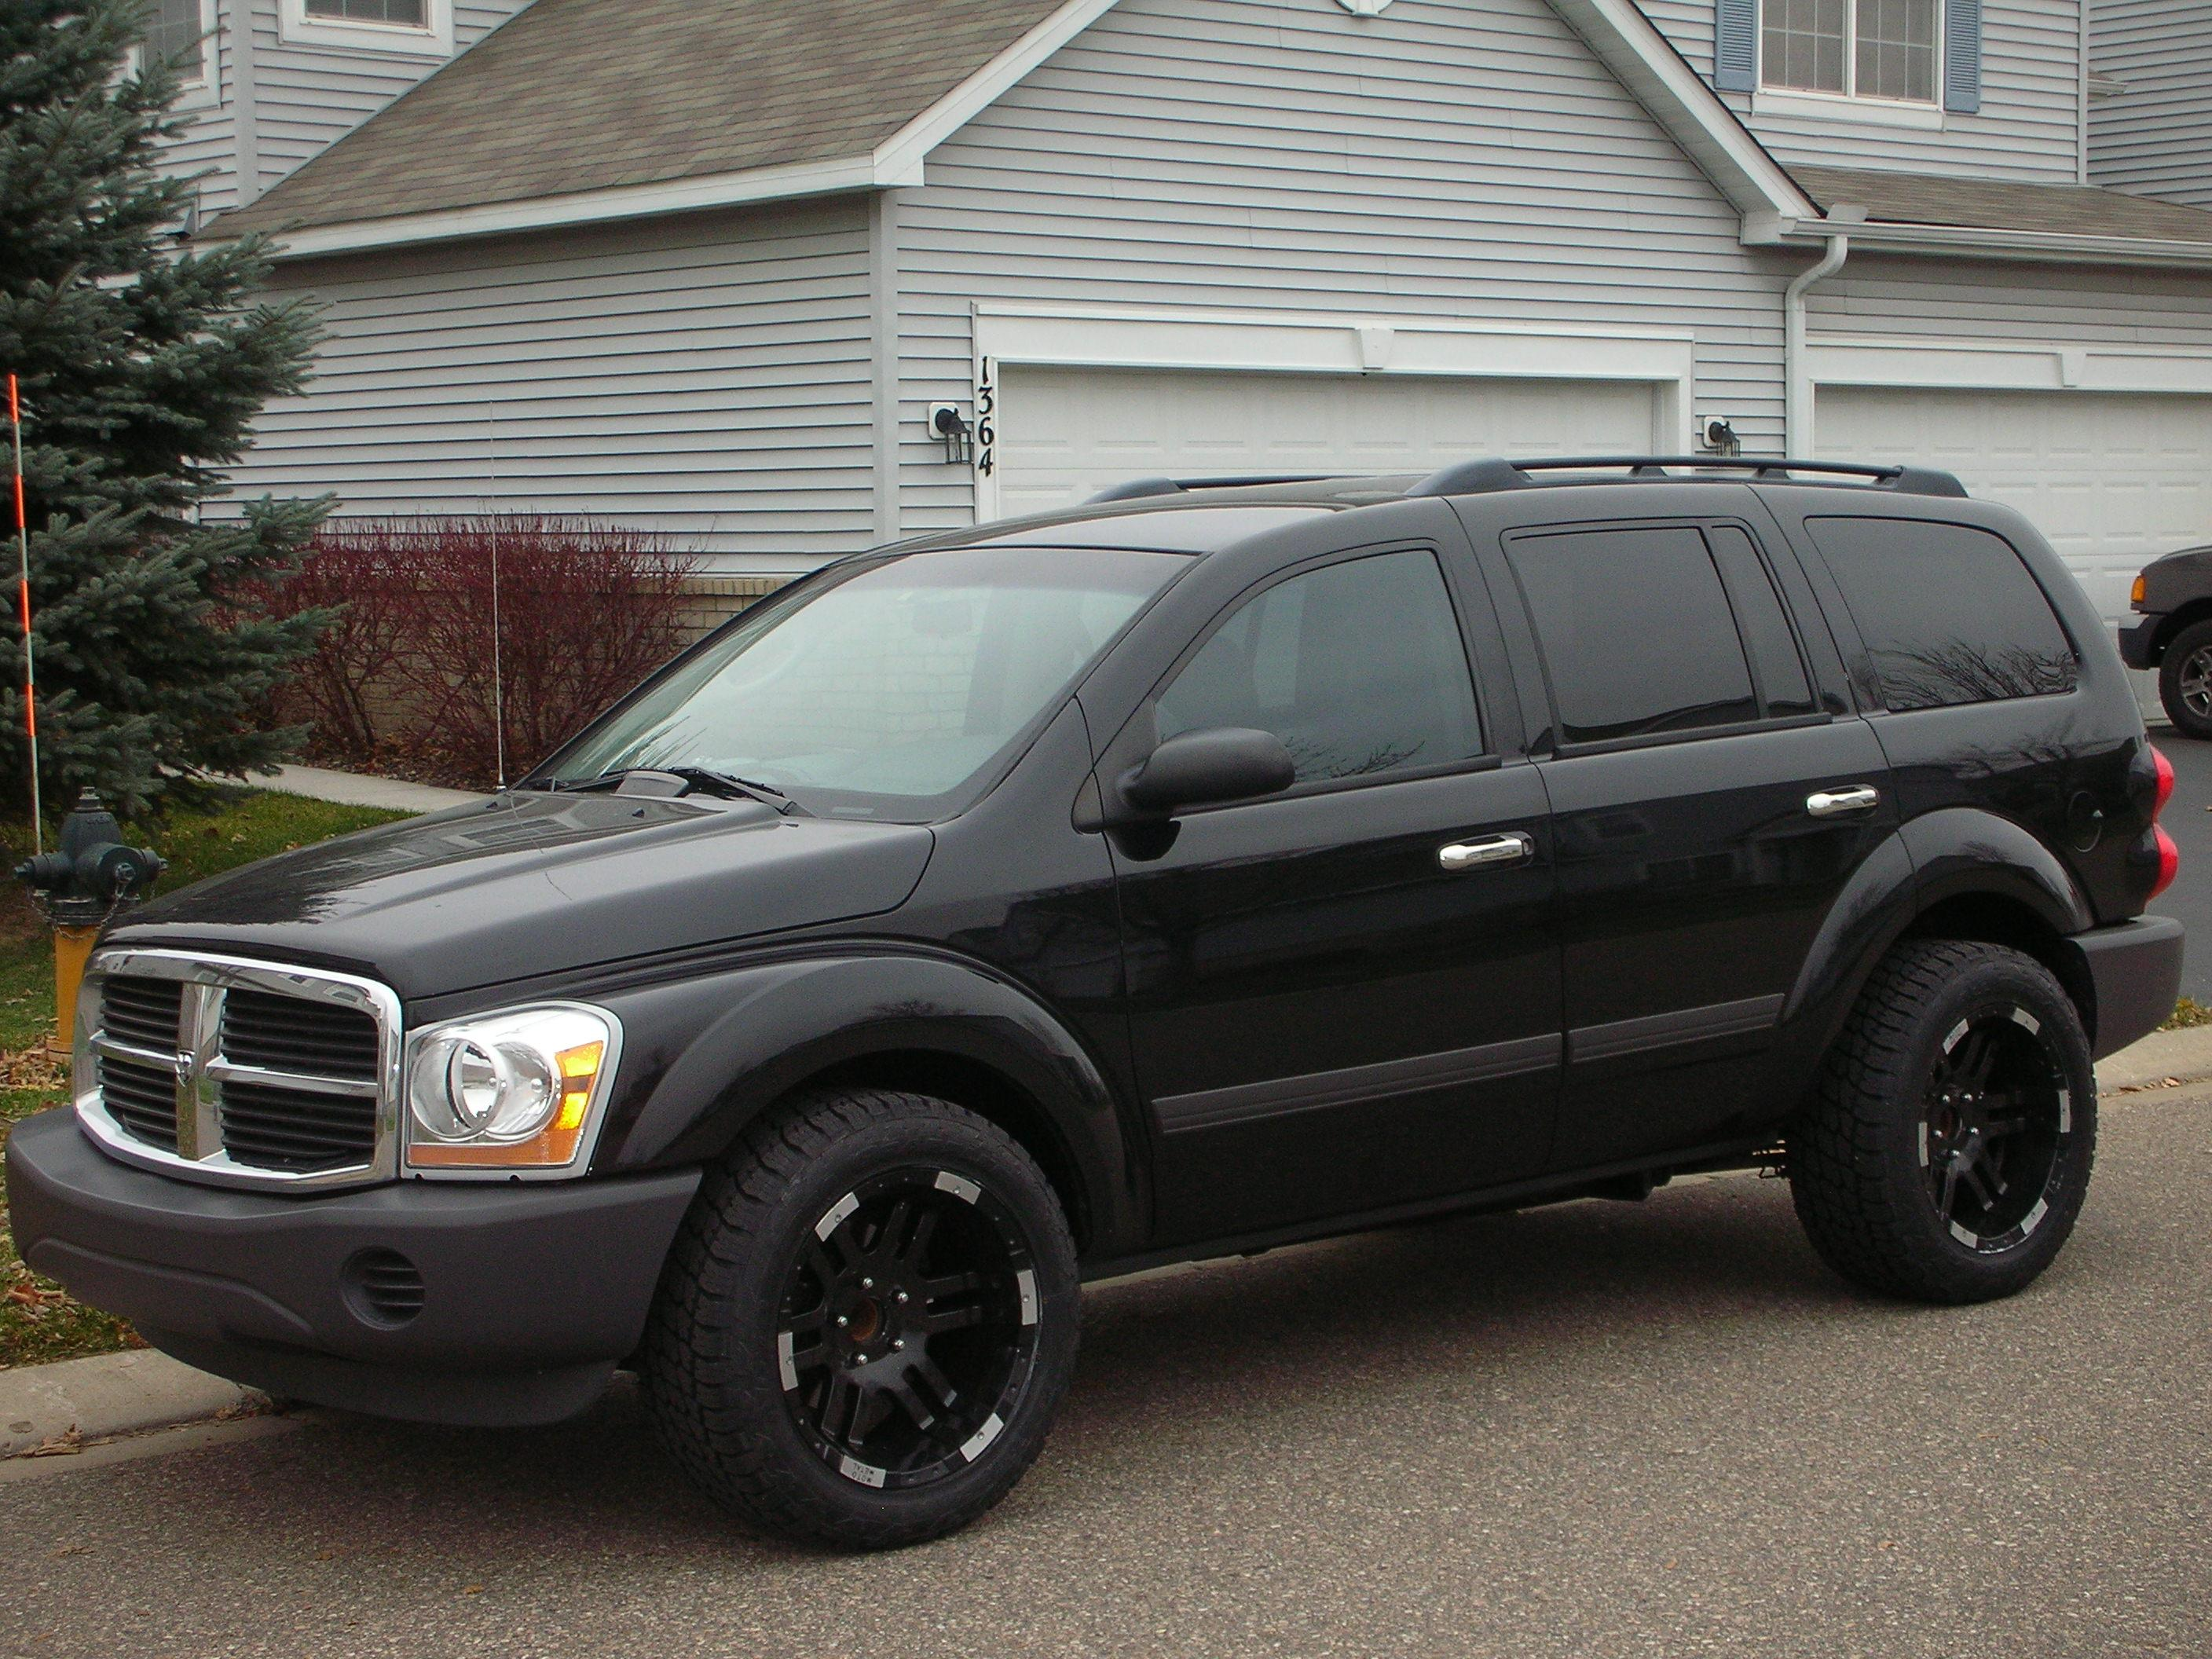 tjstockdale 2006 dodge durango specs photos modification. Black Bedroom Furniture Sets. Home Design Ideas